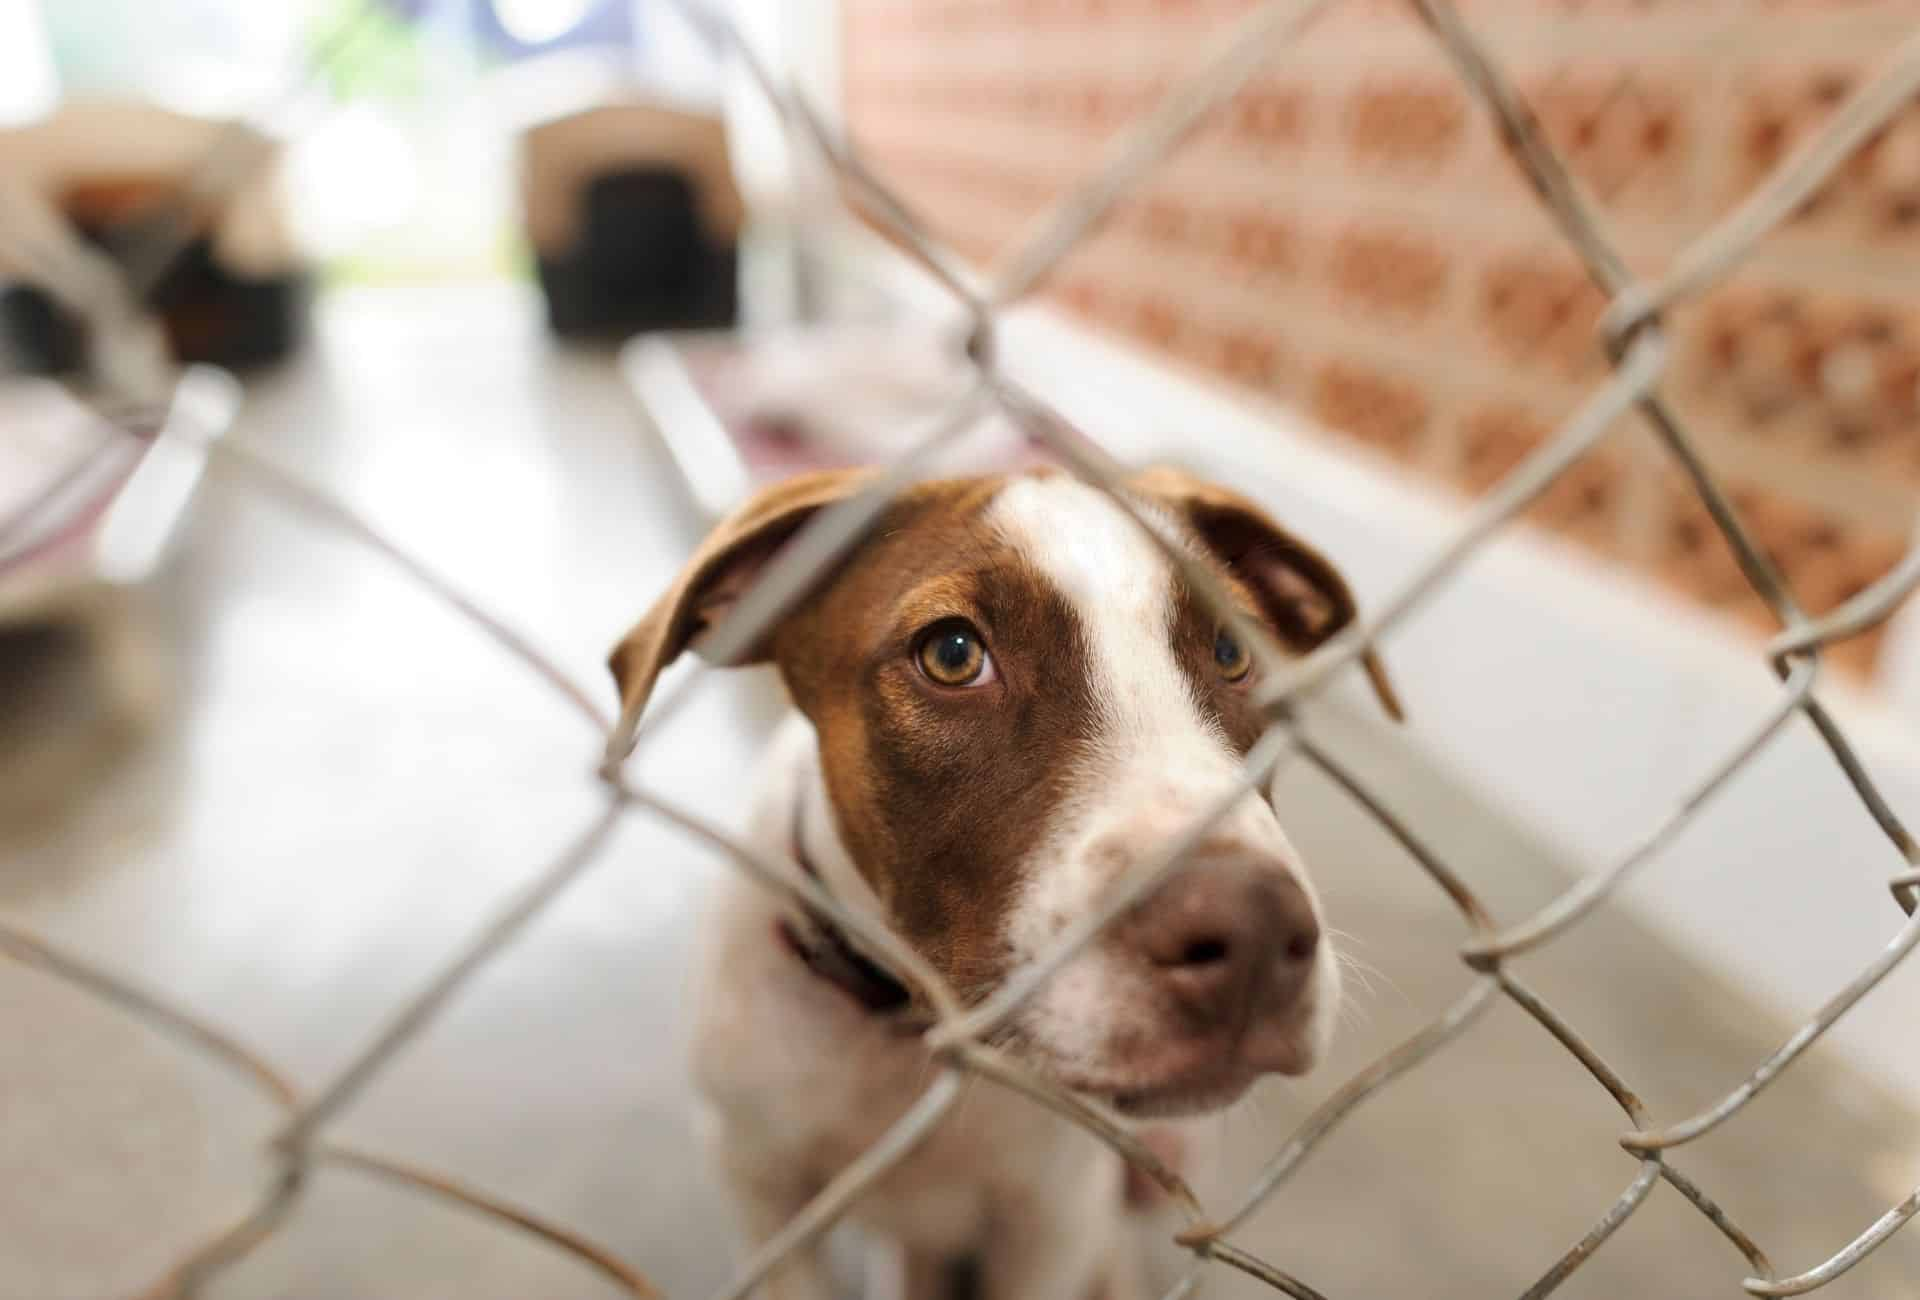 Dog inside his kennel inside the shelter with a sad look in his eyes.